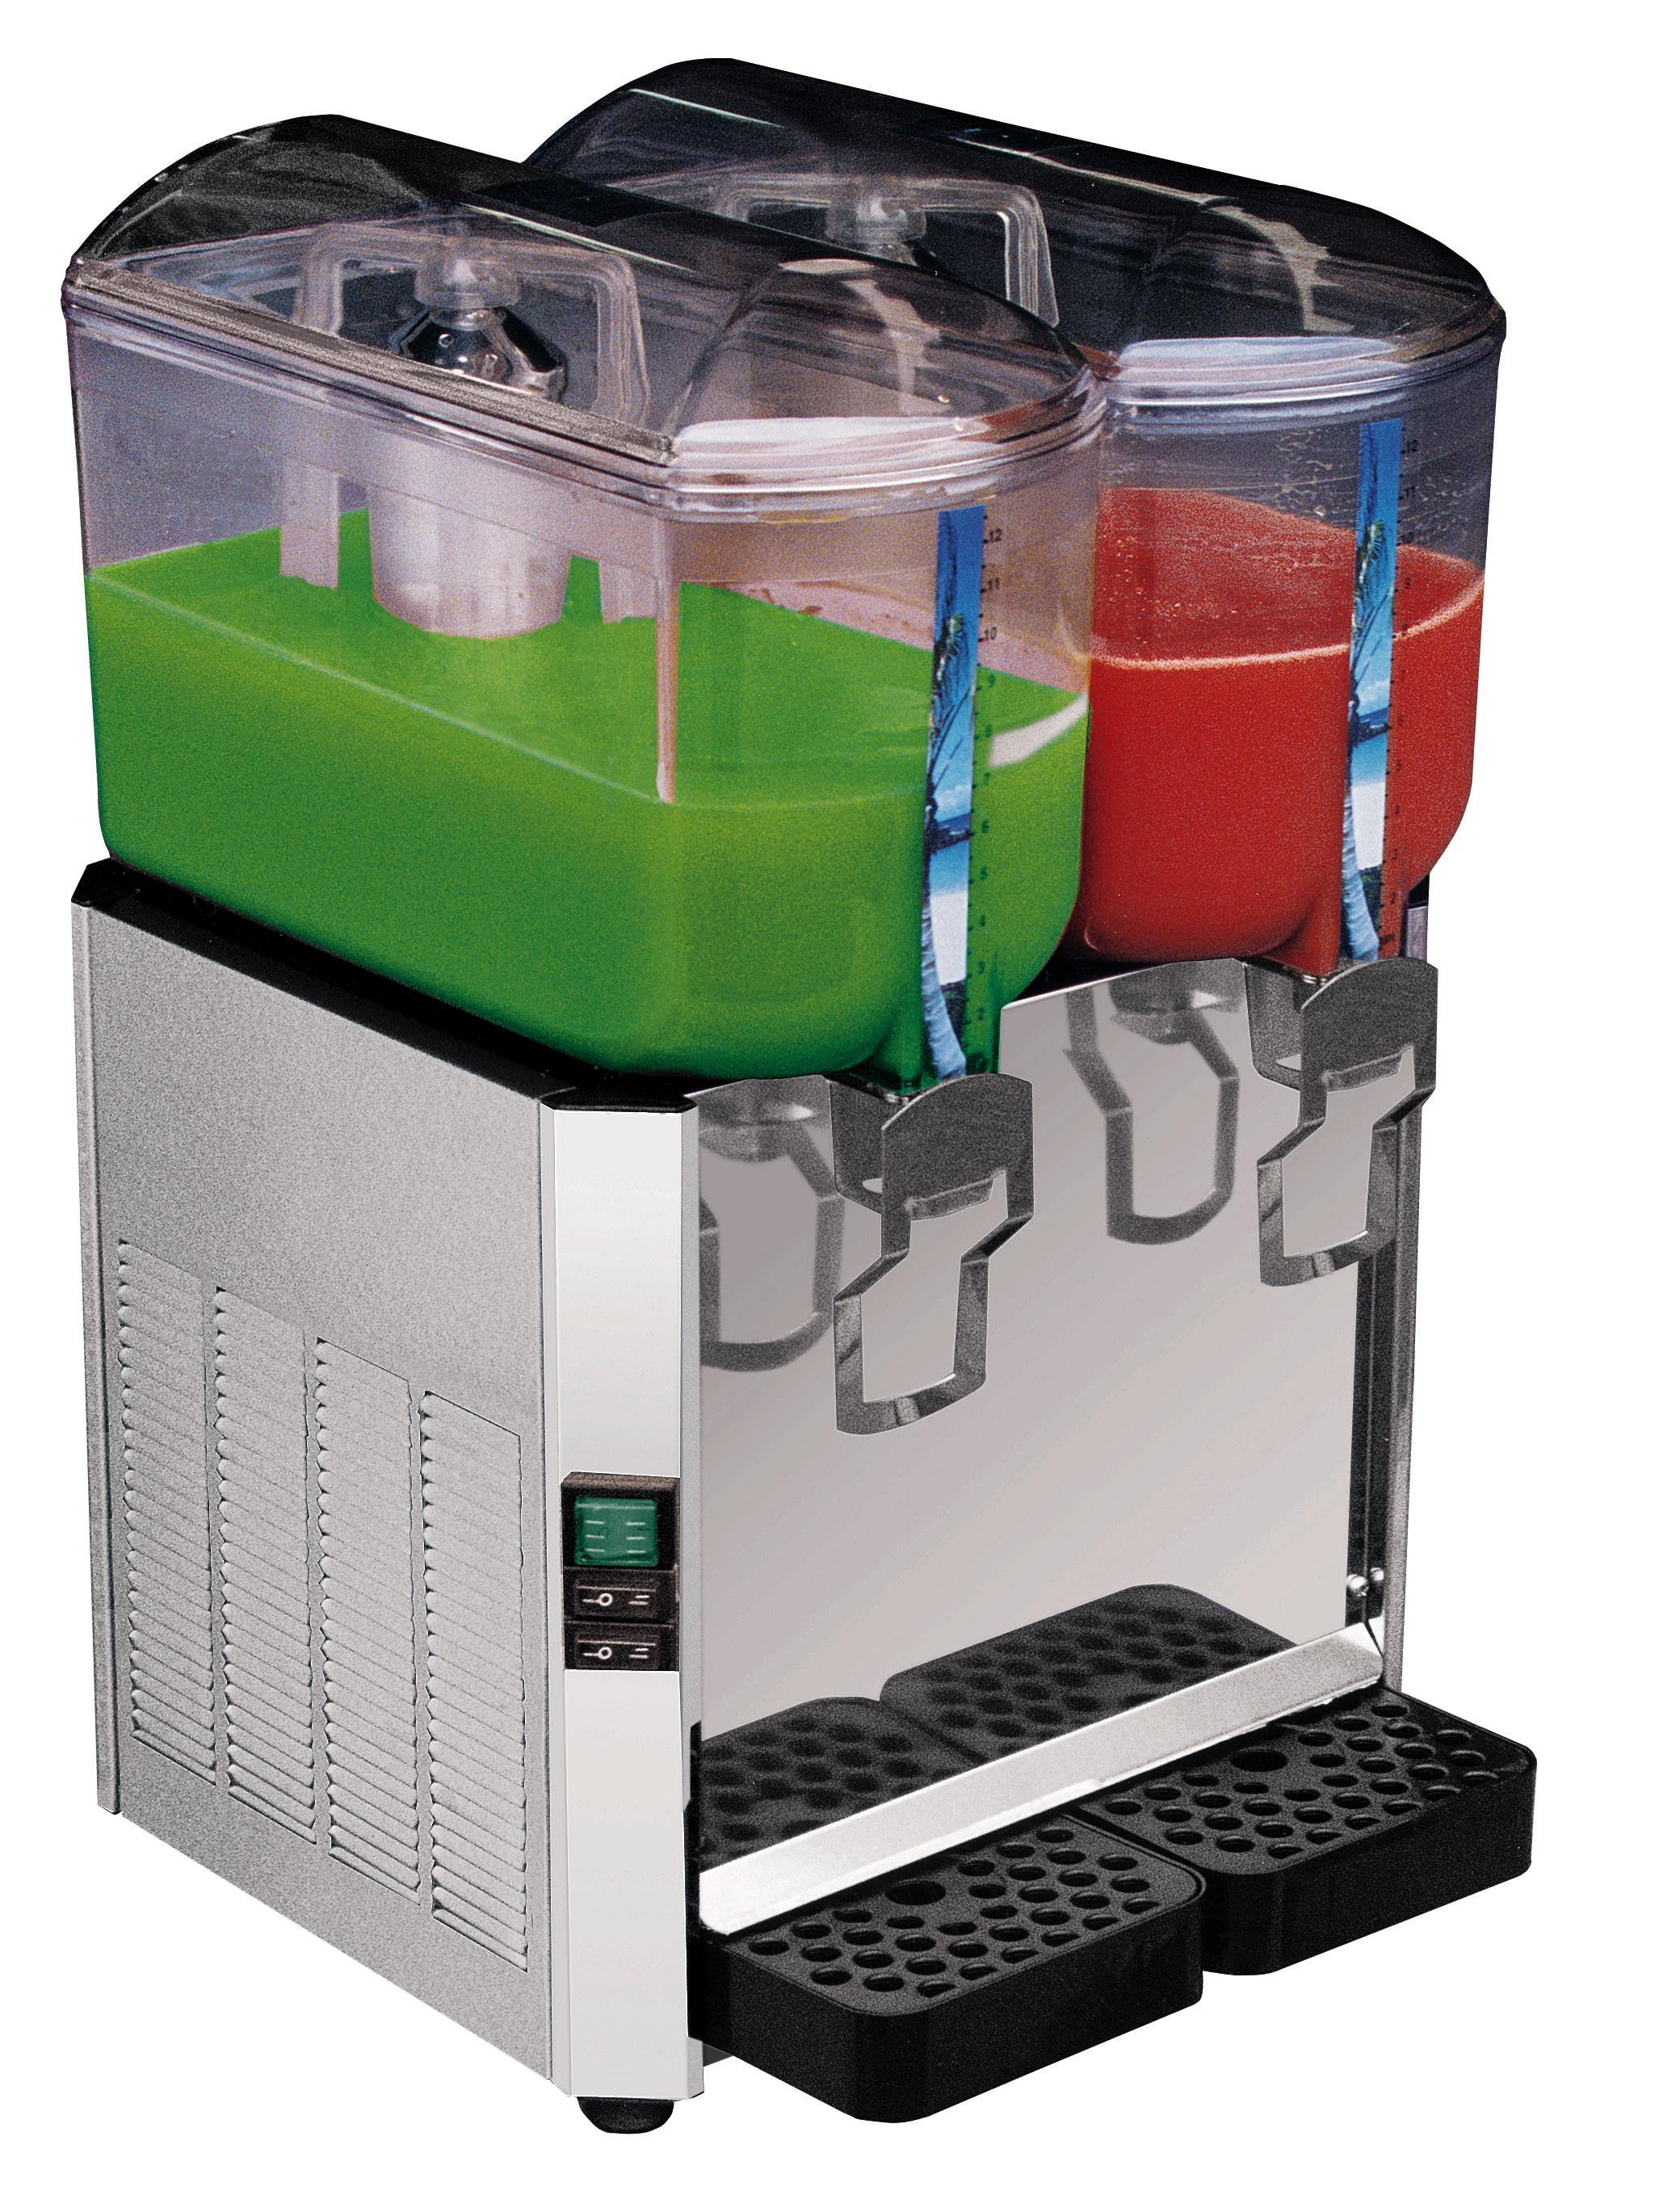 slushie machines australia is the supplier of cold drink dispensers from promek italy itsu0027 design is compact and has a strong with a very easy - Slushie Machines